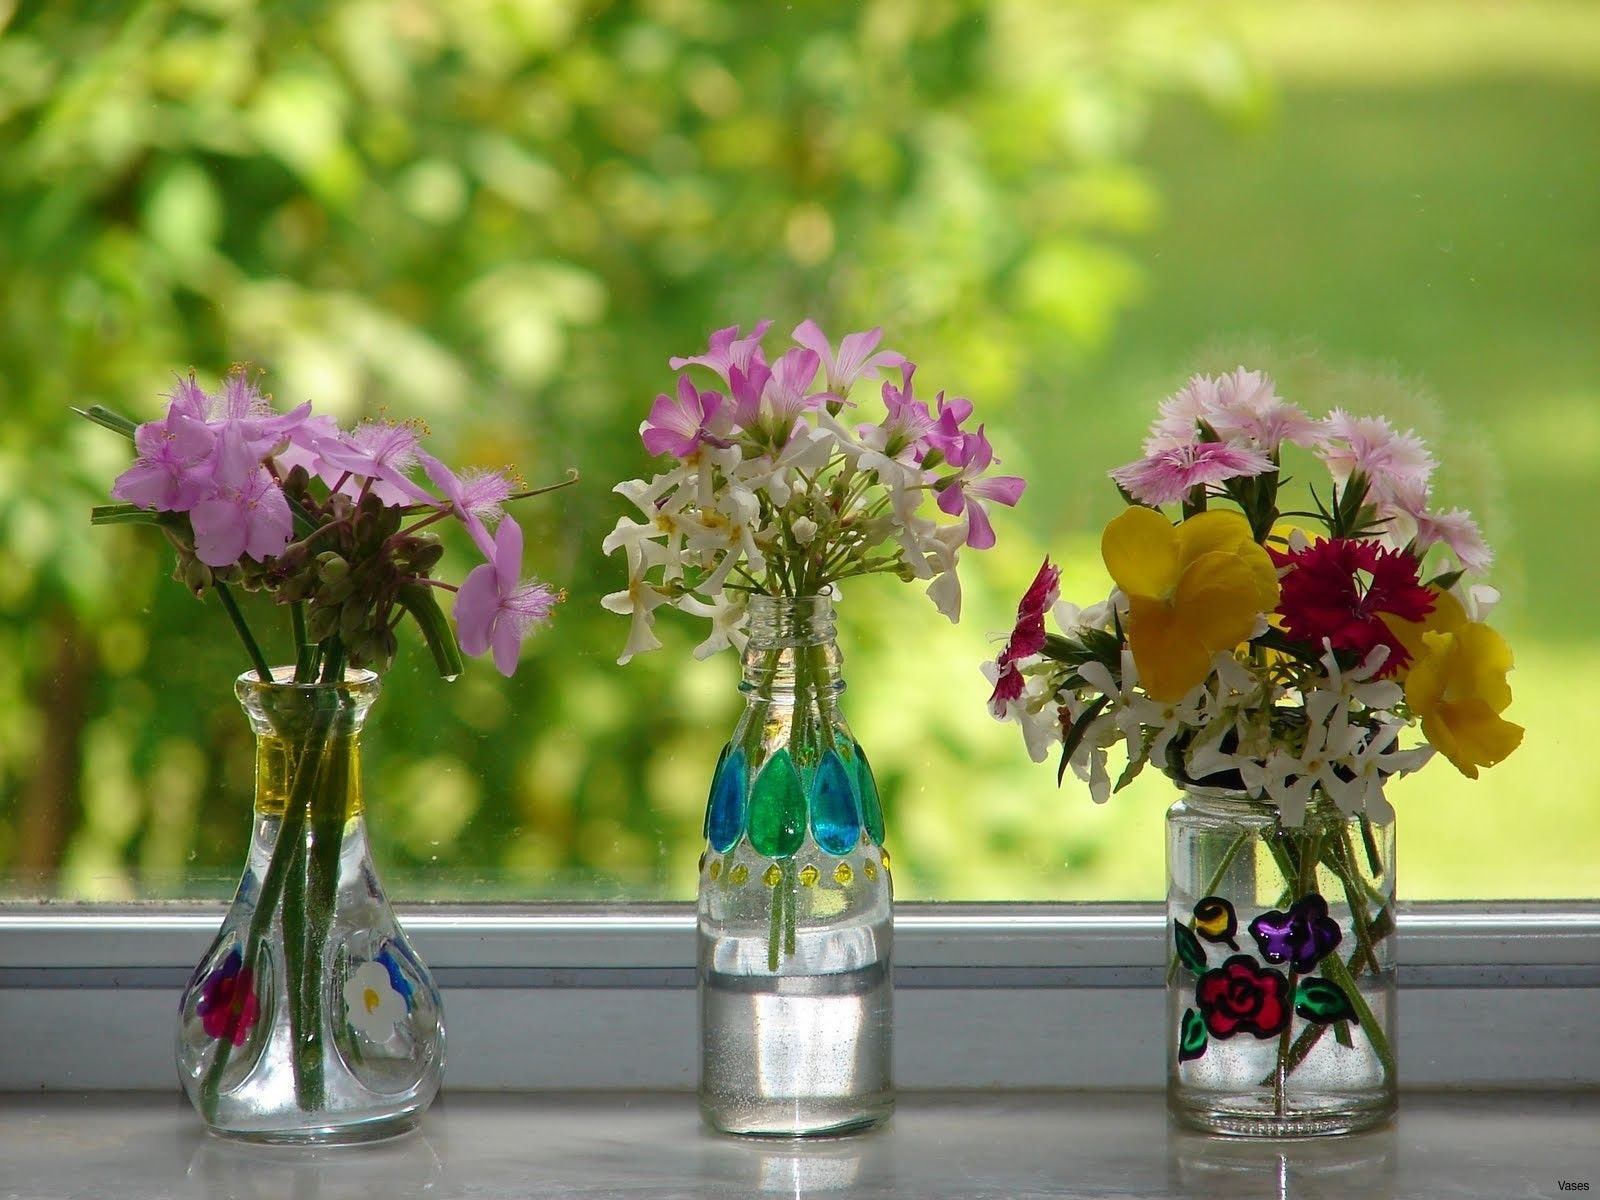 michaels glass vases of small glass vases lovely decorating ideas for vases beautiful diy regarding small glass vases lovely decorating ideas for vases beautiful diy home decor vaseh vases